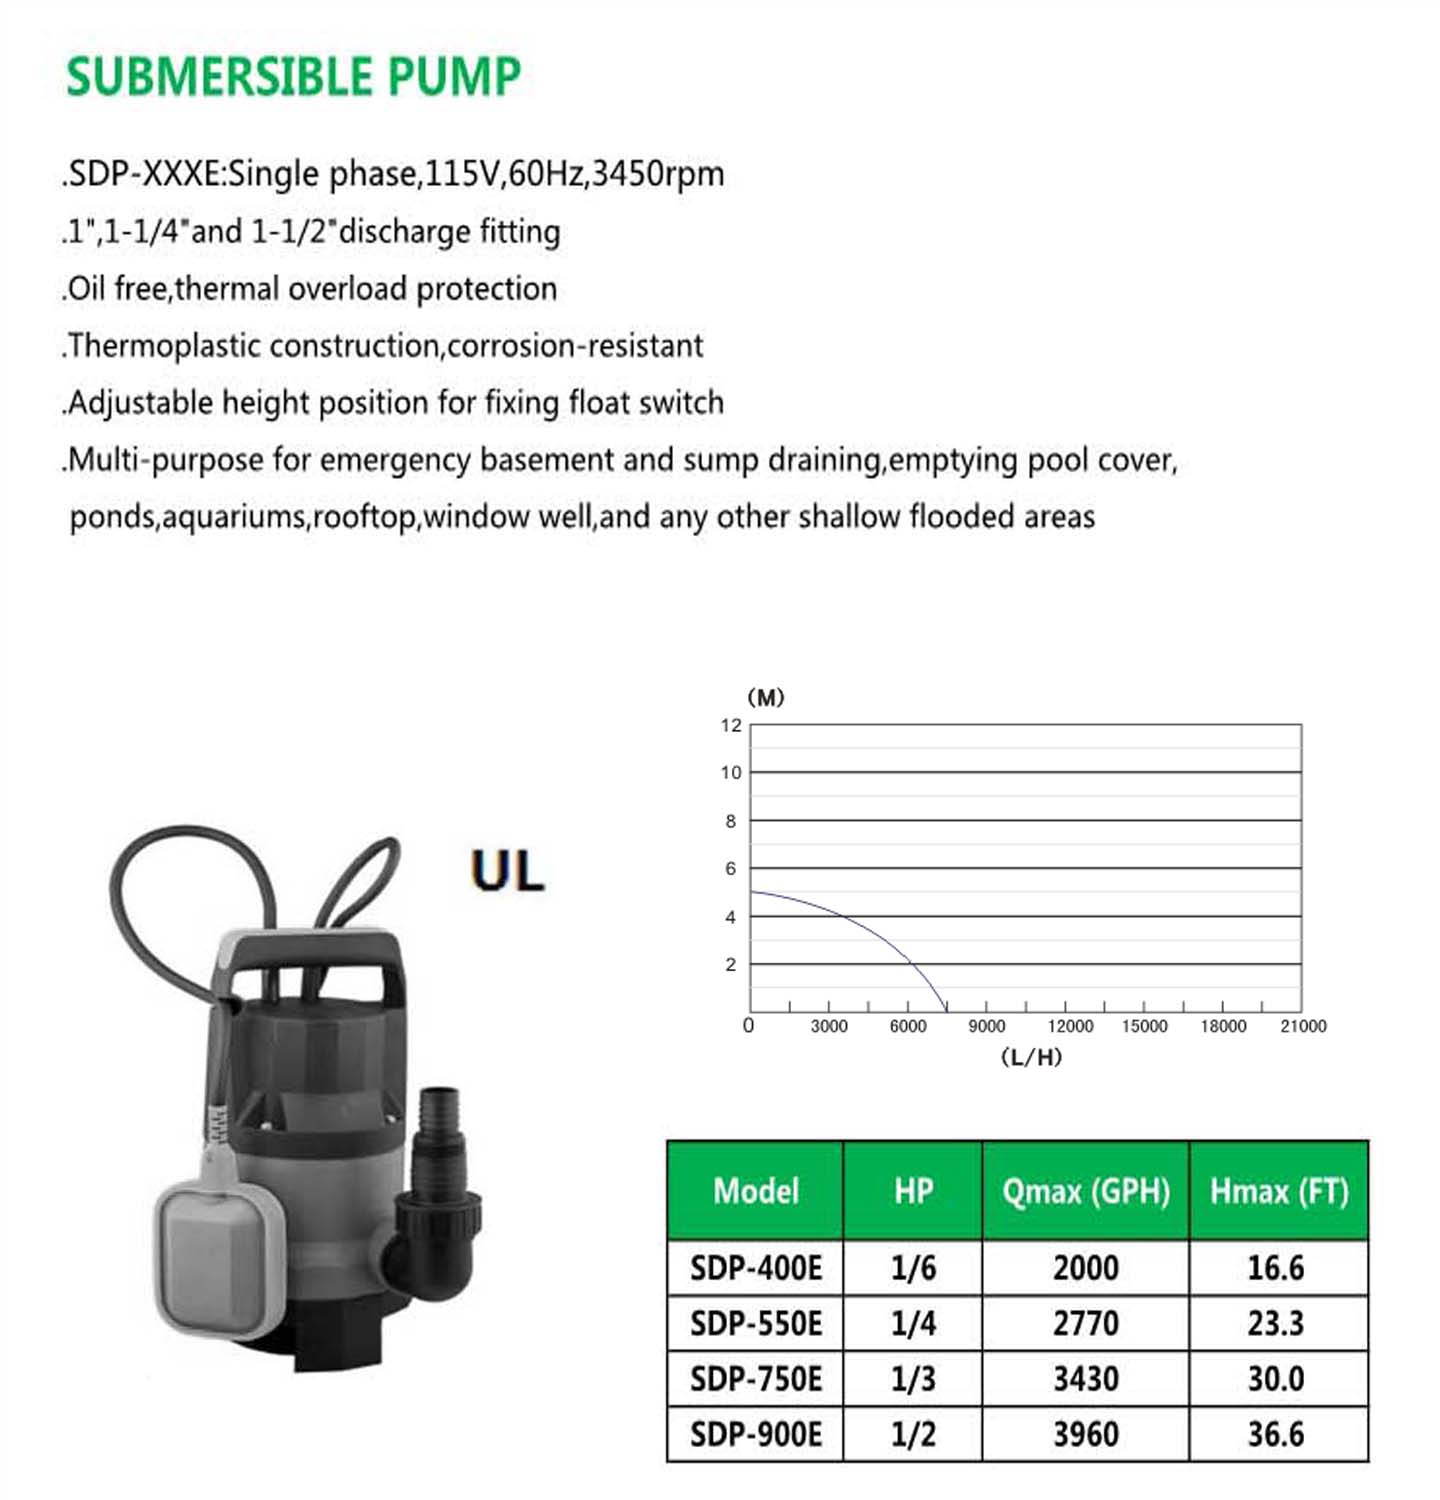 SUBMERSIBLE PUMP SDP-400E SDP-550E SDP-750E SDP-900E